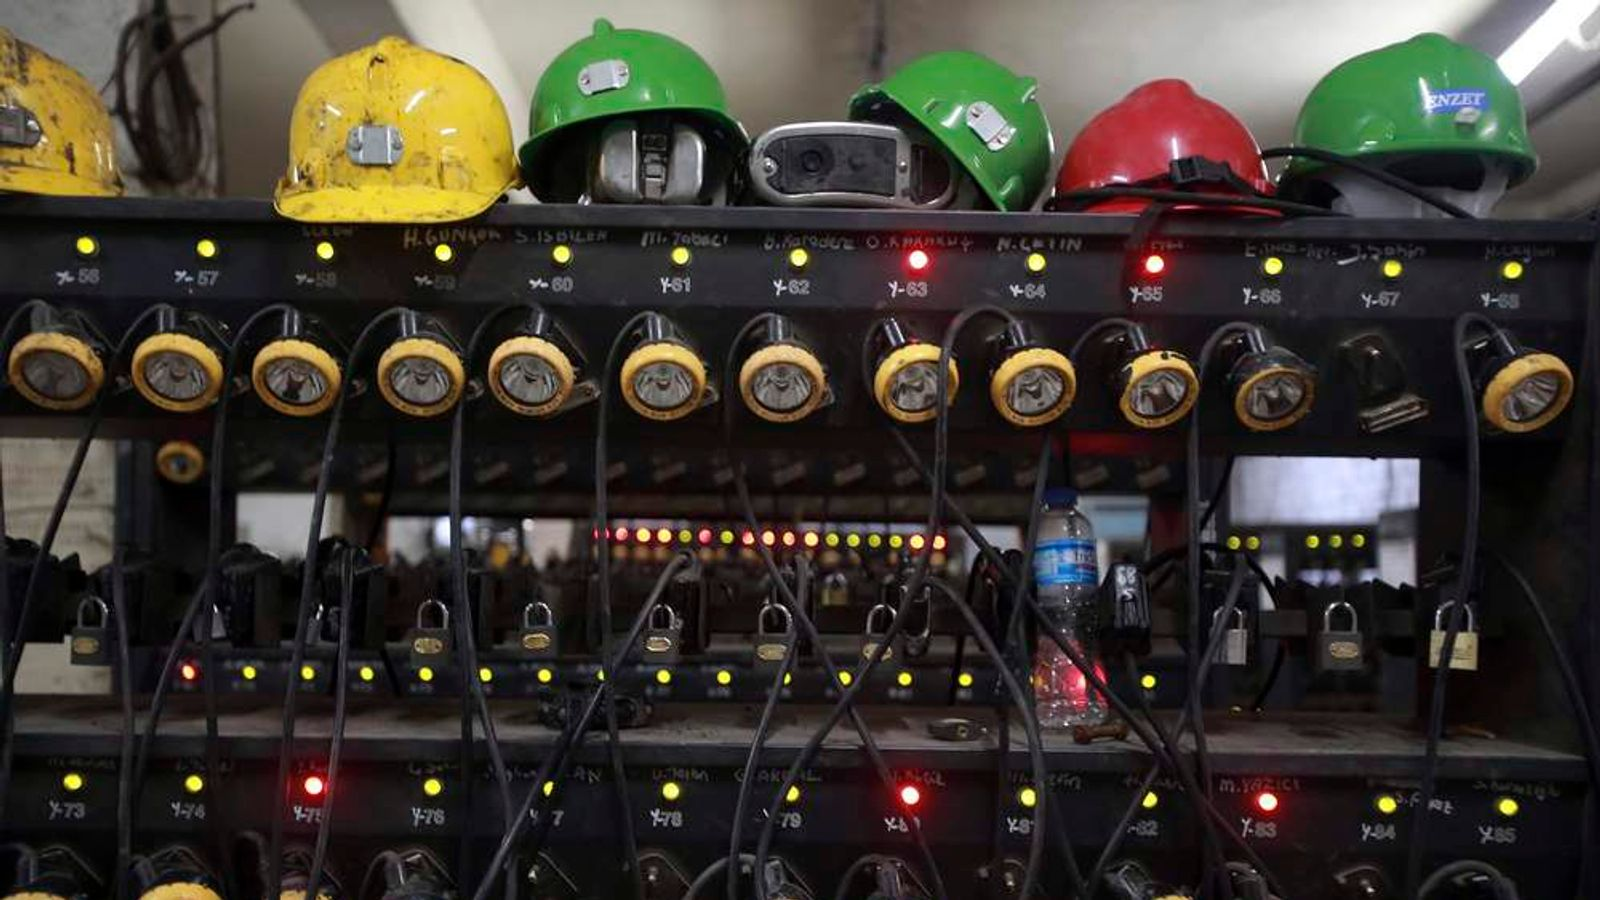 Headlights are charged inside a changing room of a coal mine after a mining disaster in Soma